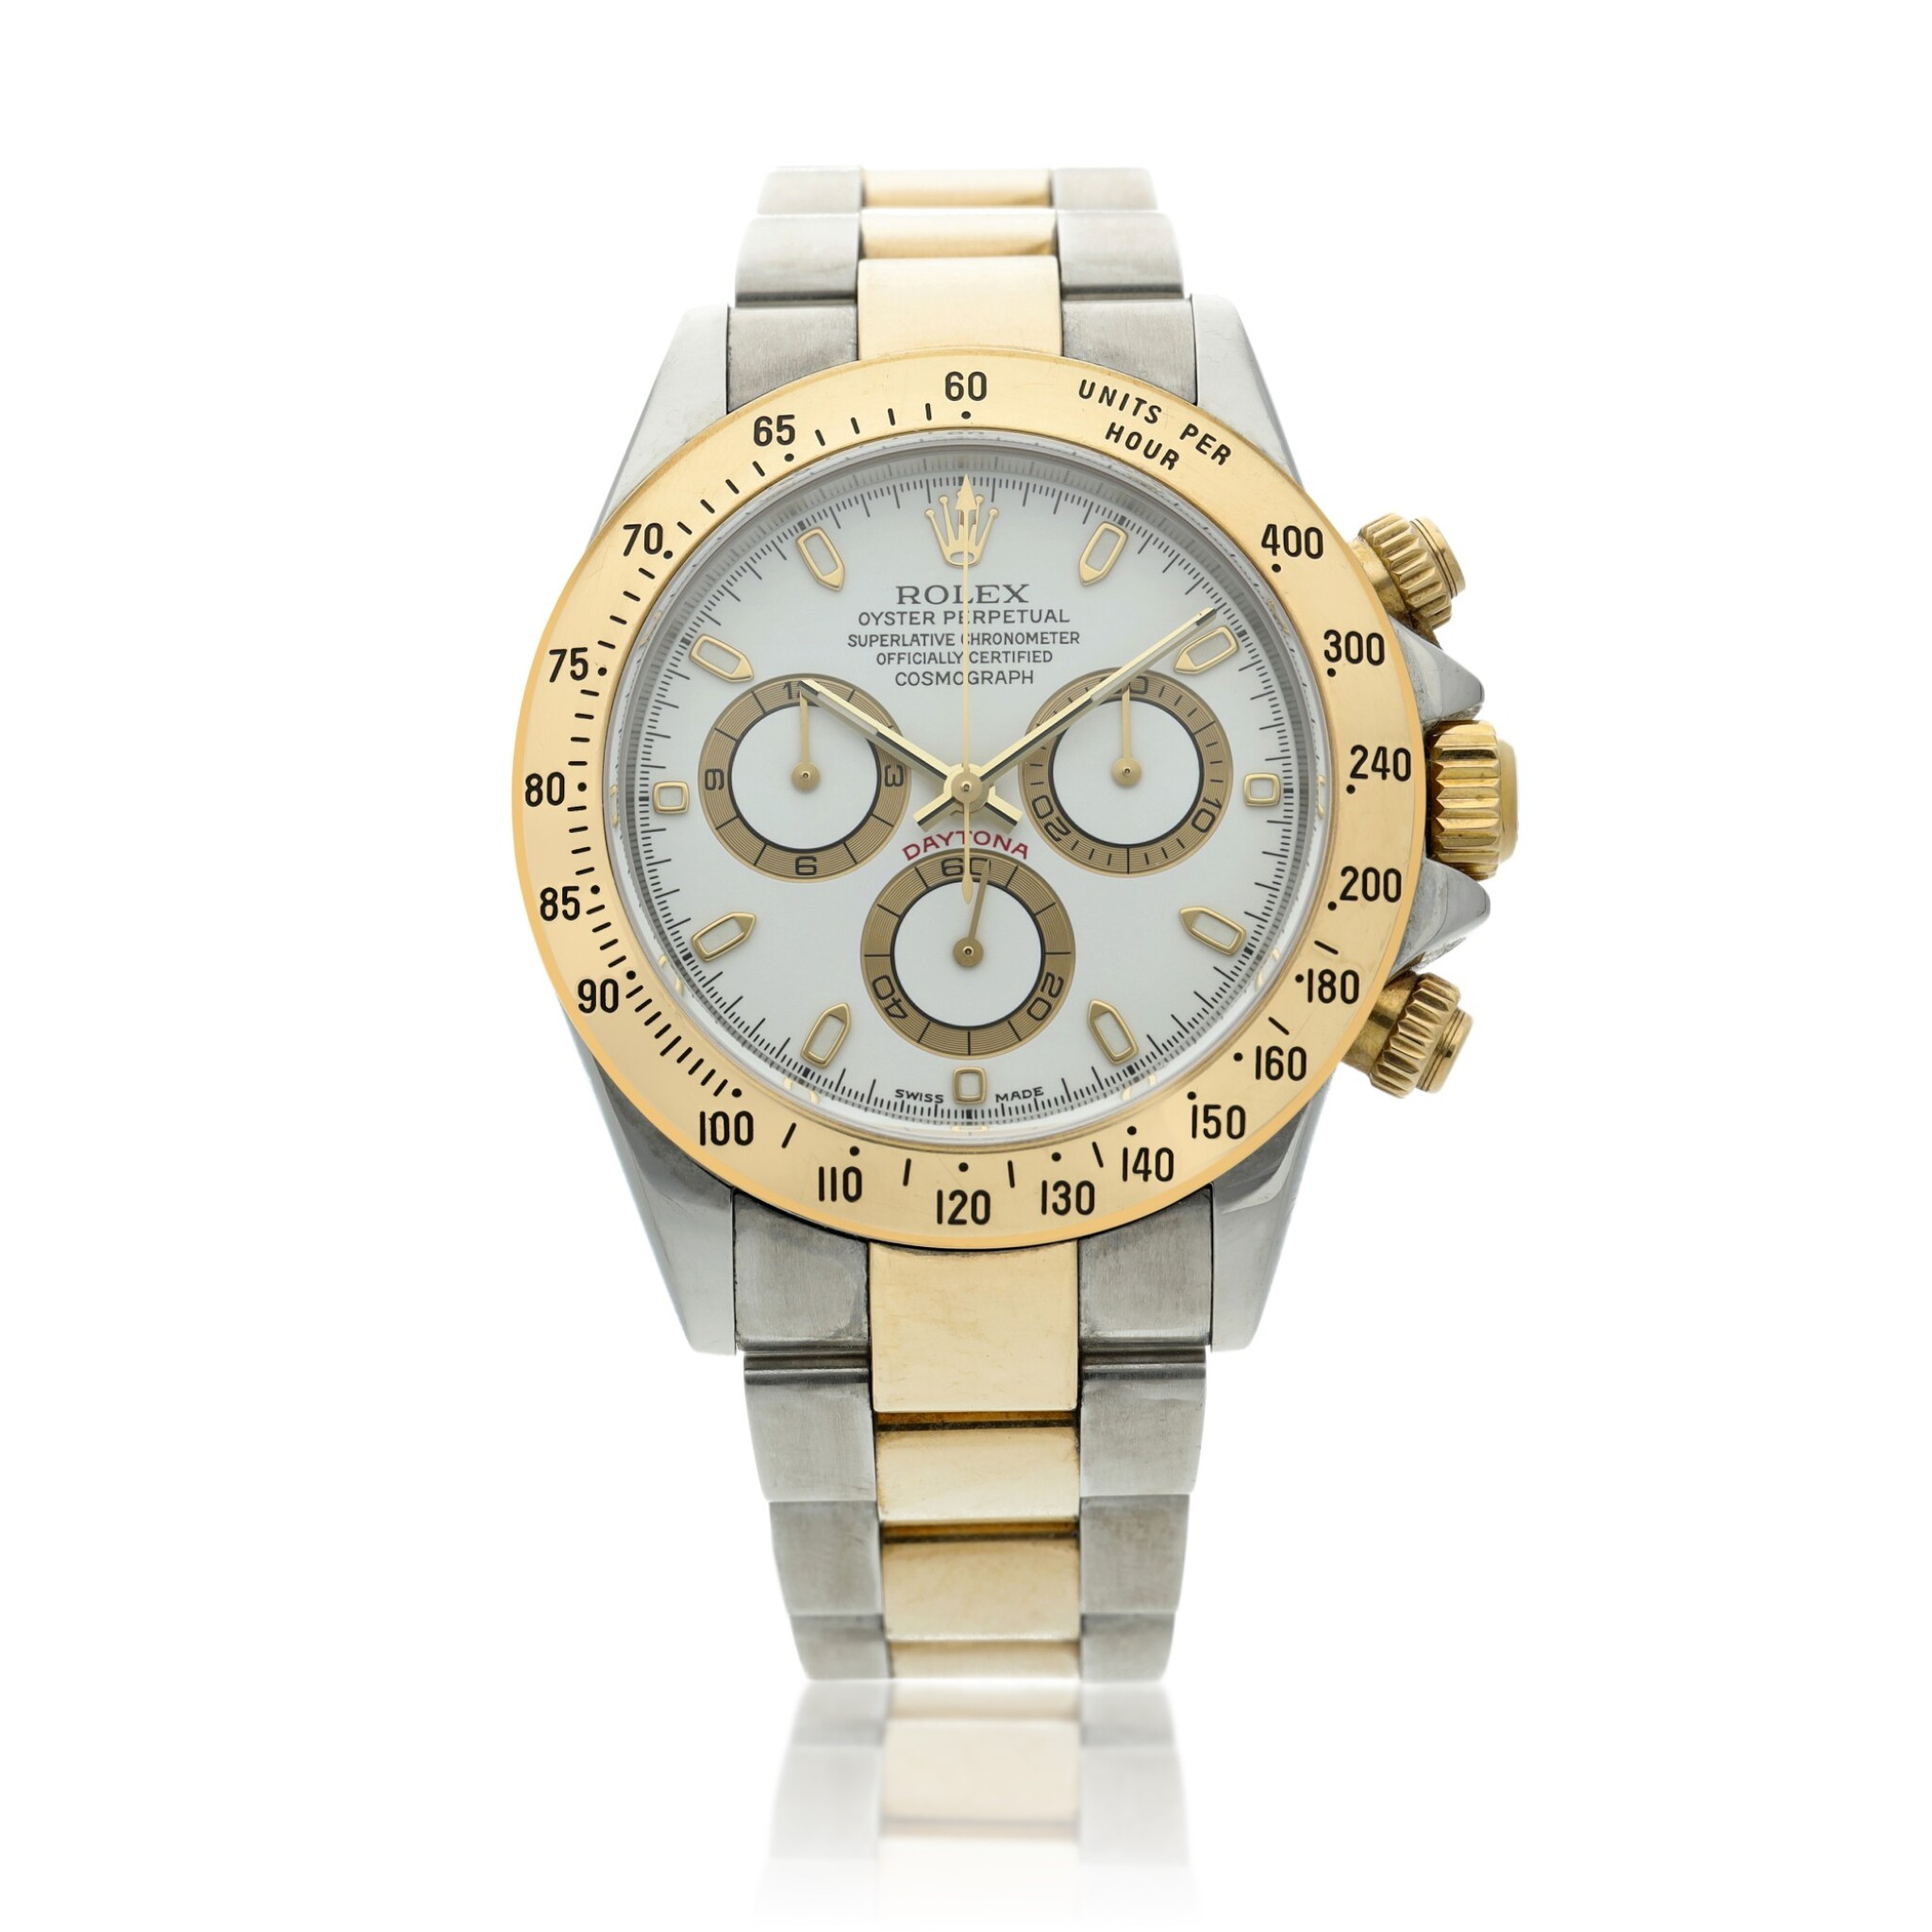 View full screen - View 1 of Lot 11. Reference 116523 Daytona A stainless steel and yellow gold automatic chronograph wristwatch with bracelet, Circa 2002 .